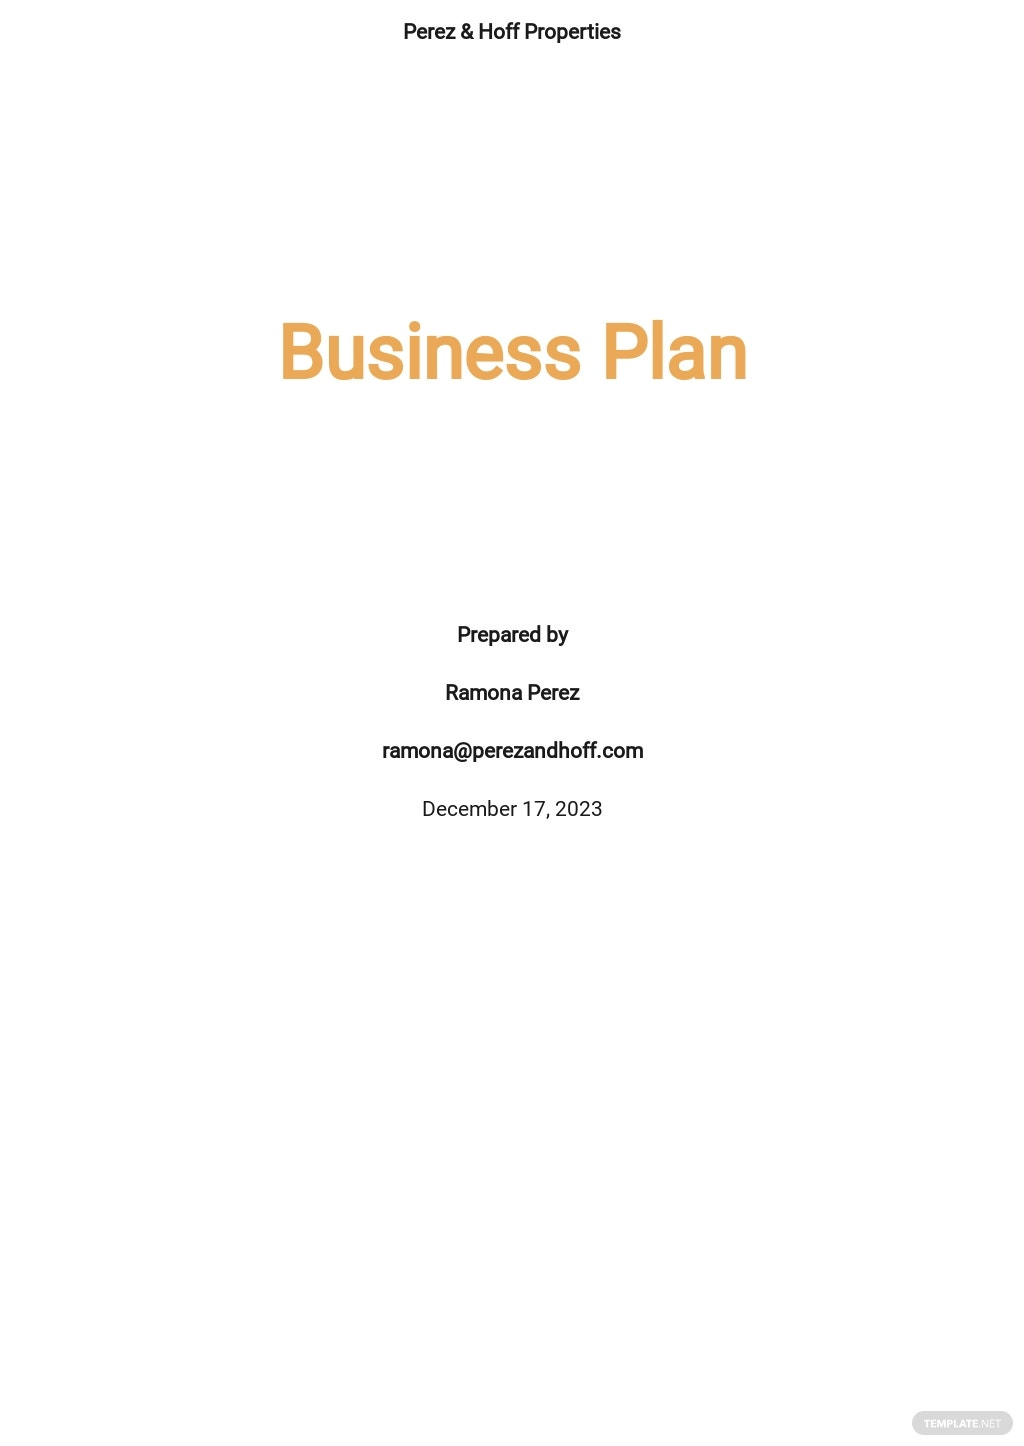 Property Investment Business Plan Template.jpe